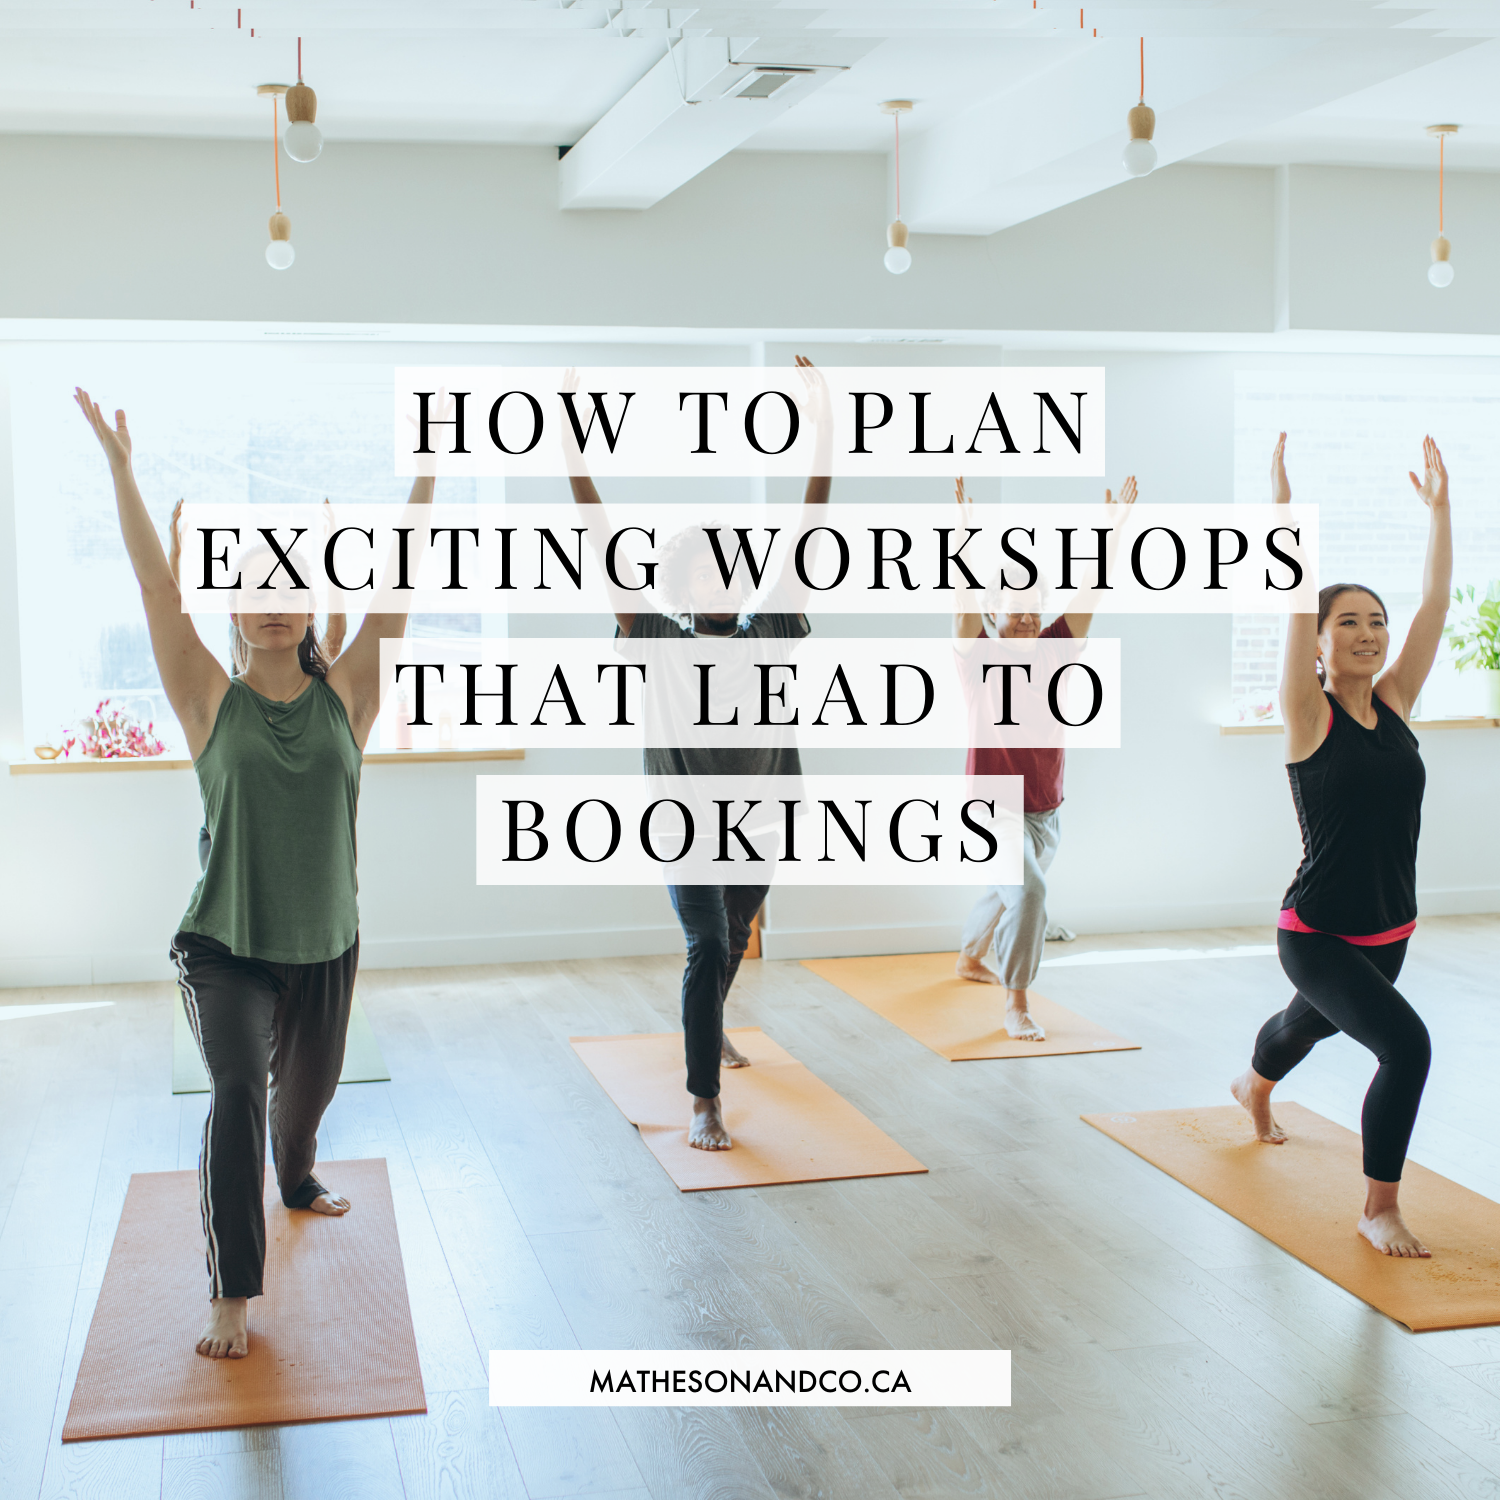 How to Plan Exciting Workshops that Lead to Bookings